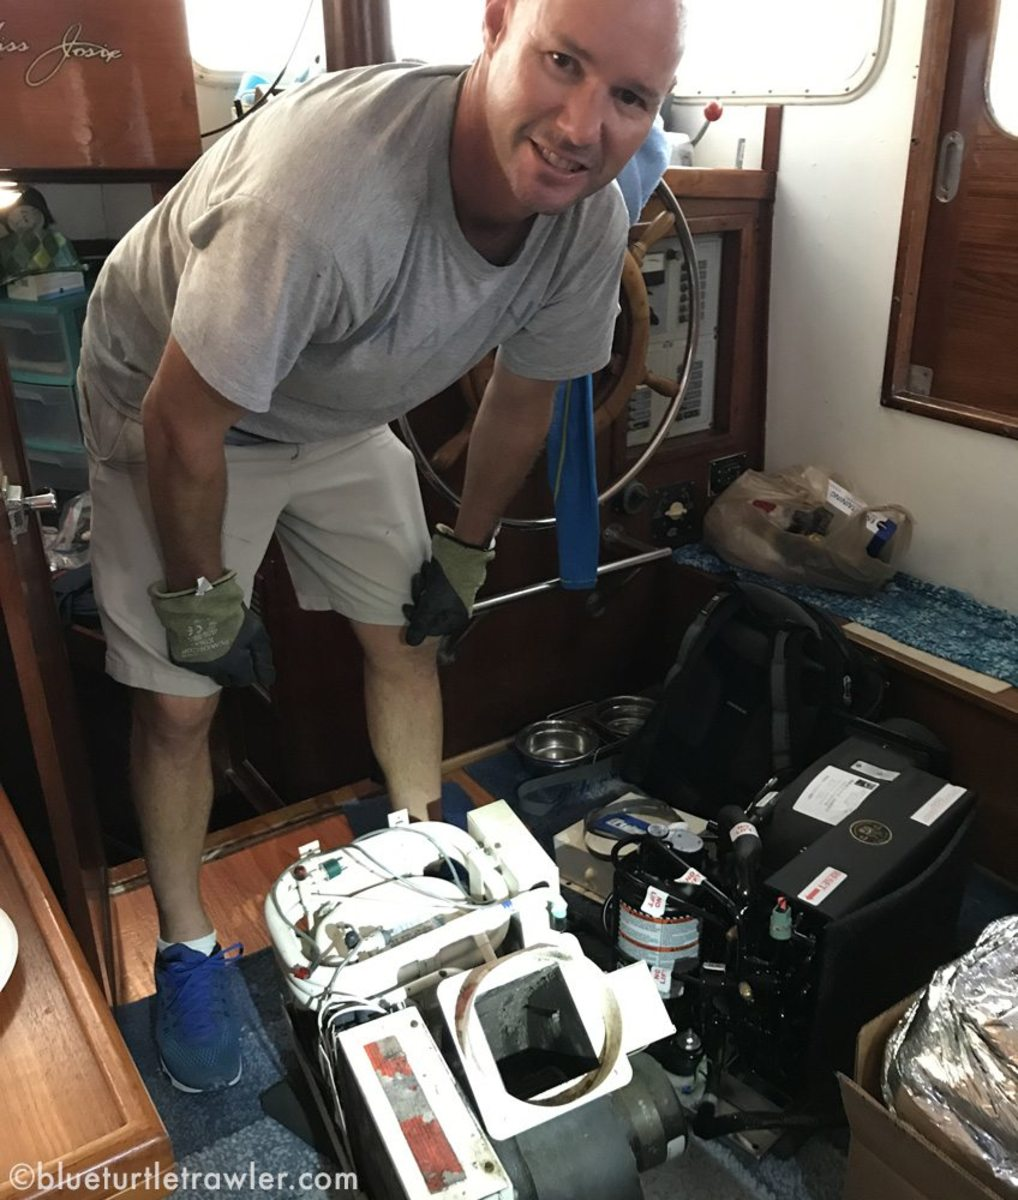 Randy with both AC units – old one on the left (white color) and new one on the right (black).